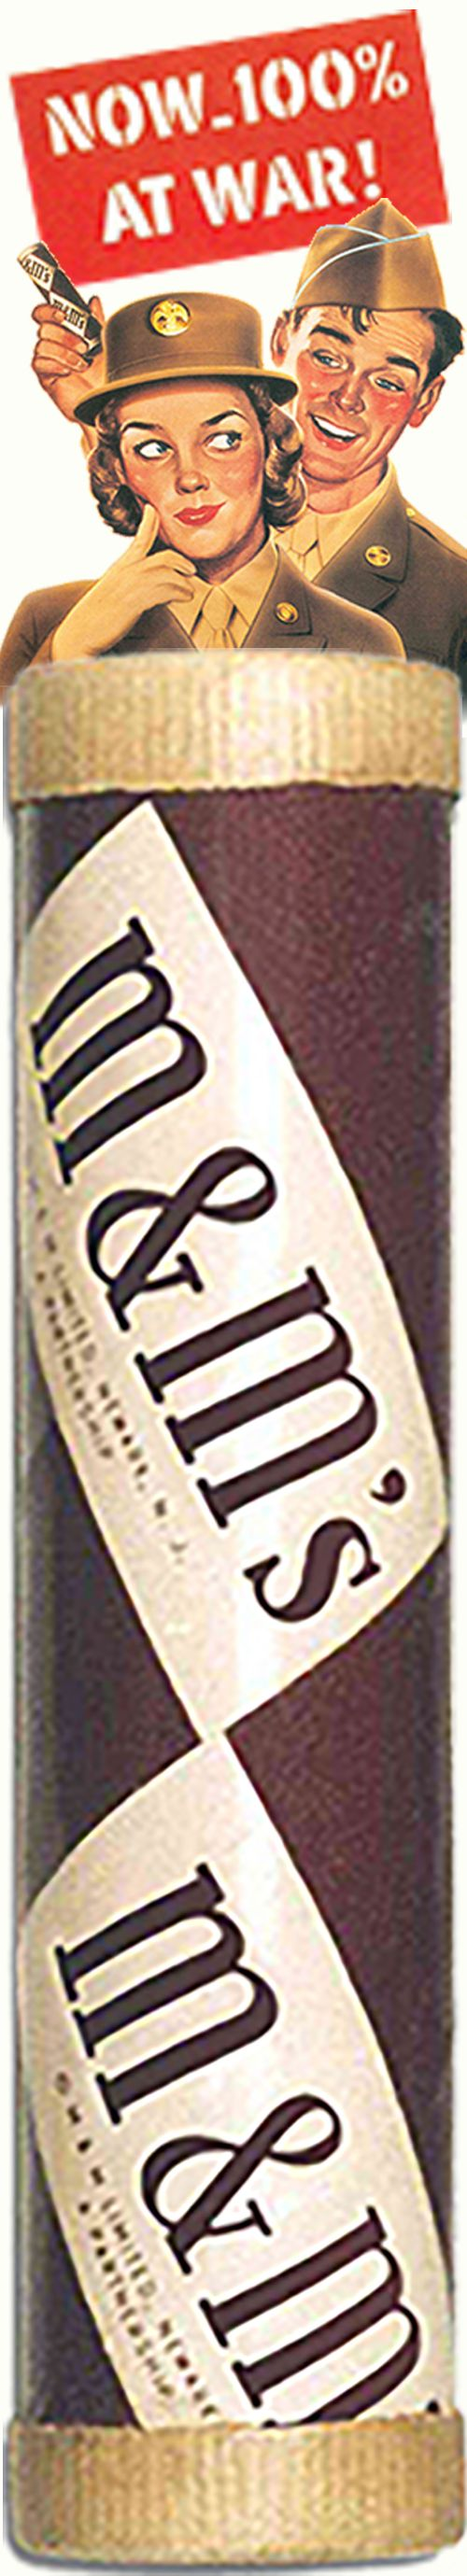 03 Mar 41: The Mars Company receives a patent for their process of producing M&M chocolate pellets within a candy shell which, during the war, will be exclusively sold to the US military ~